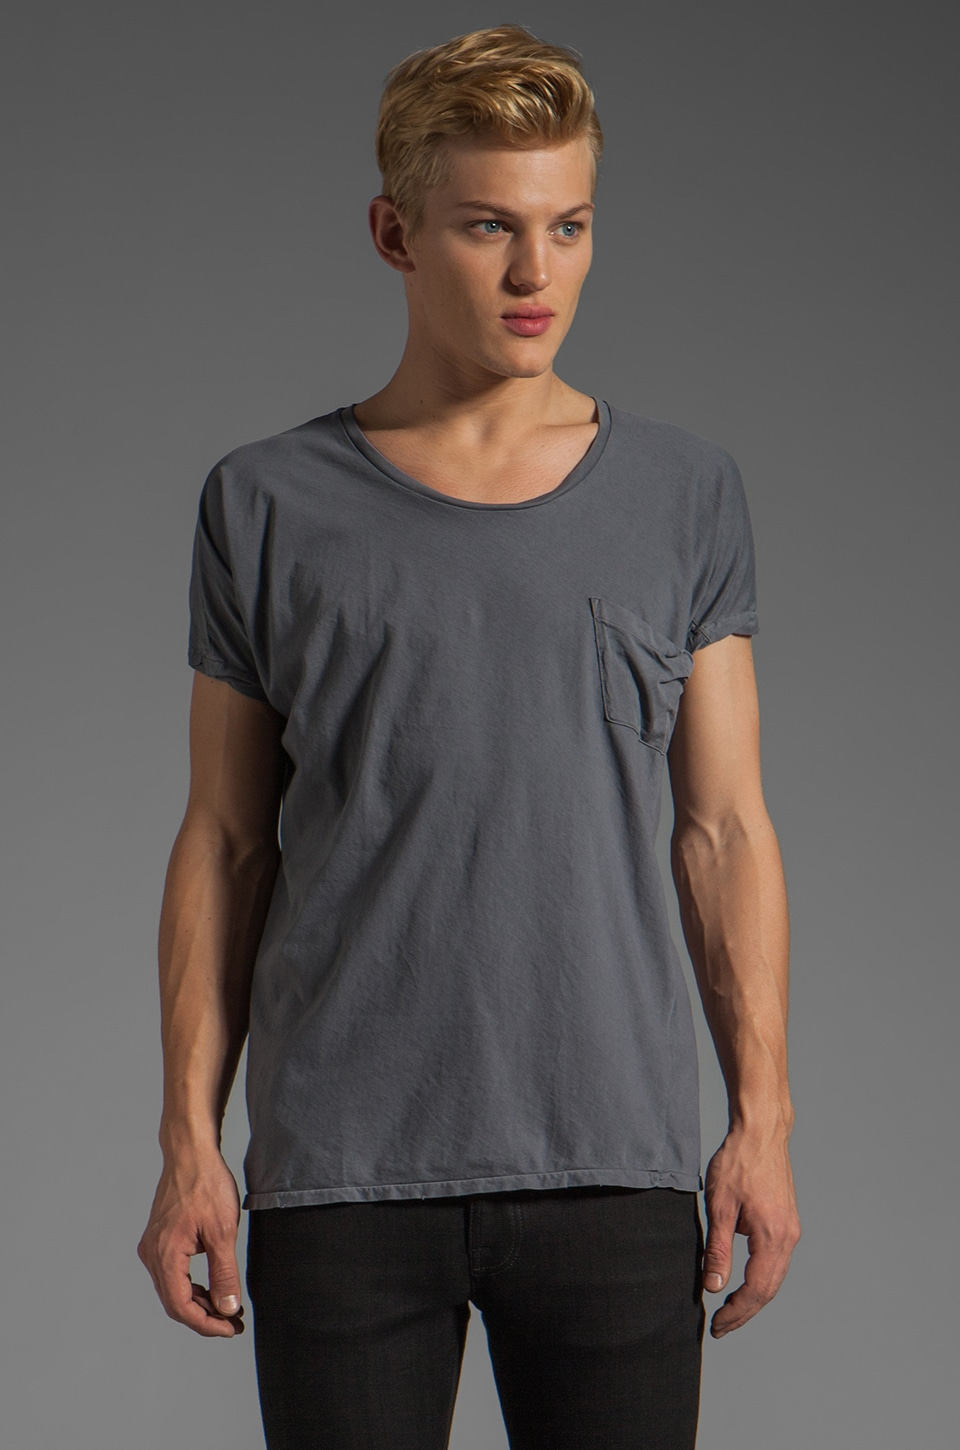 Scotch & Soda Tee in Charcoal